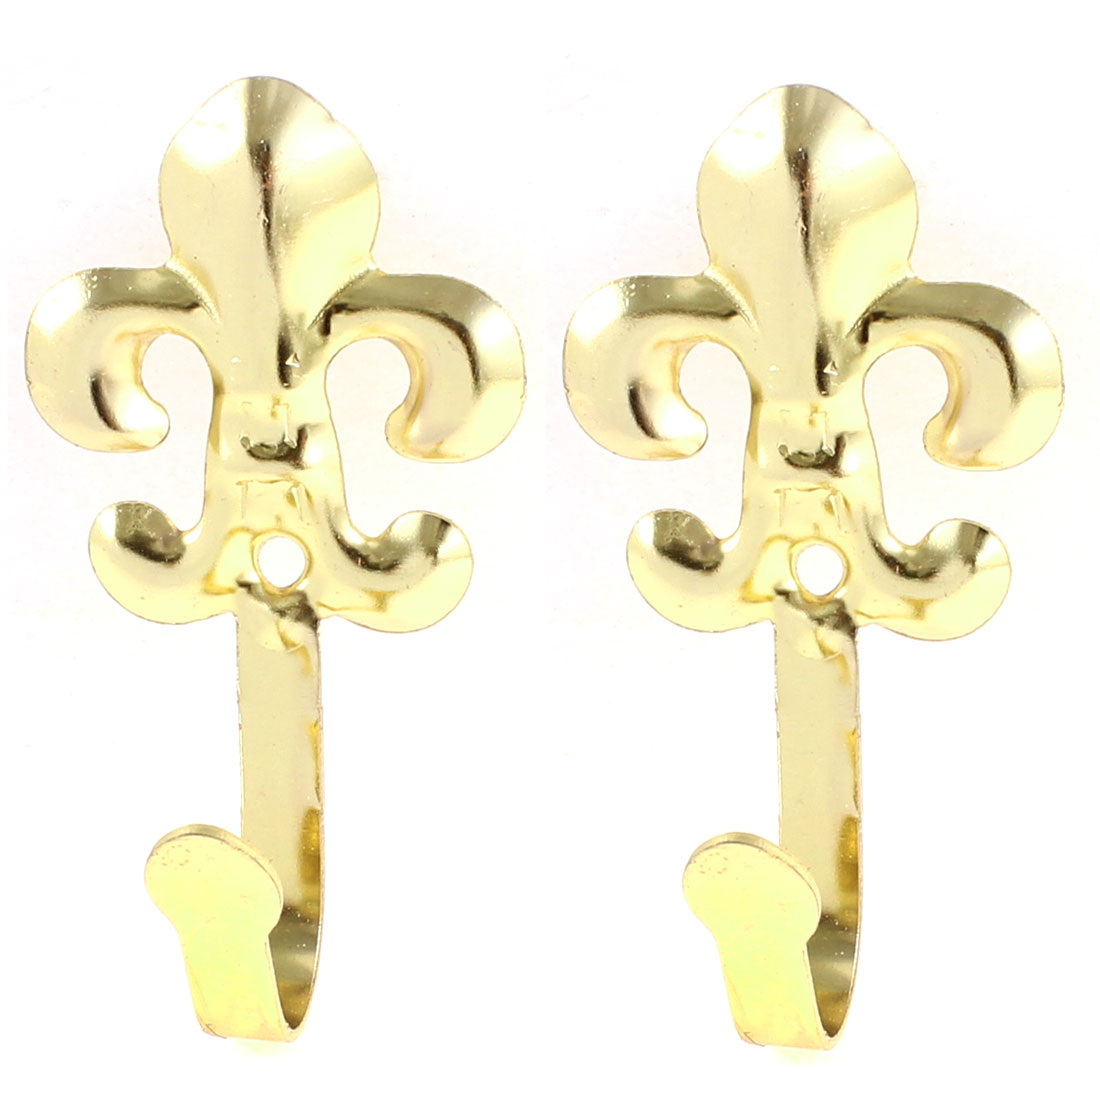 Gold Tone Window Curtain Drapery Tie Backs Hooks Holdbacks Hanger 2pcs